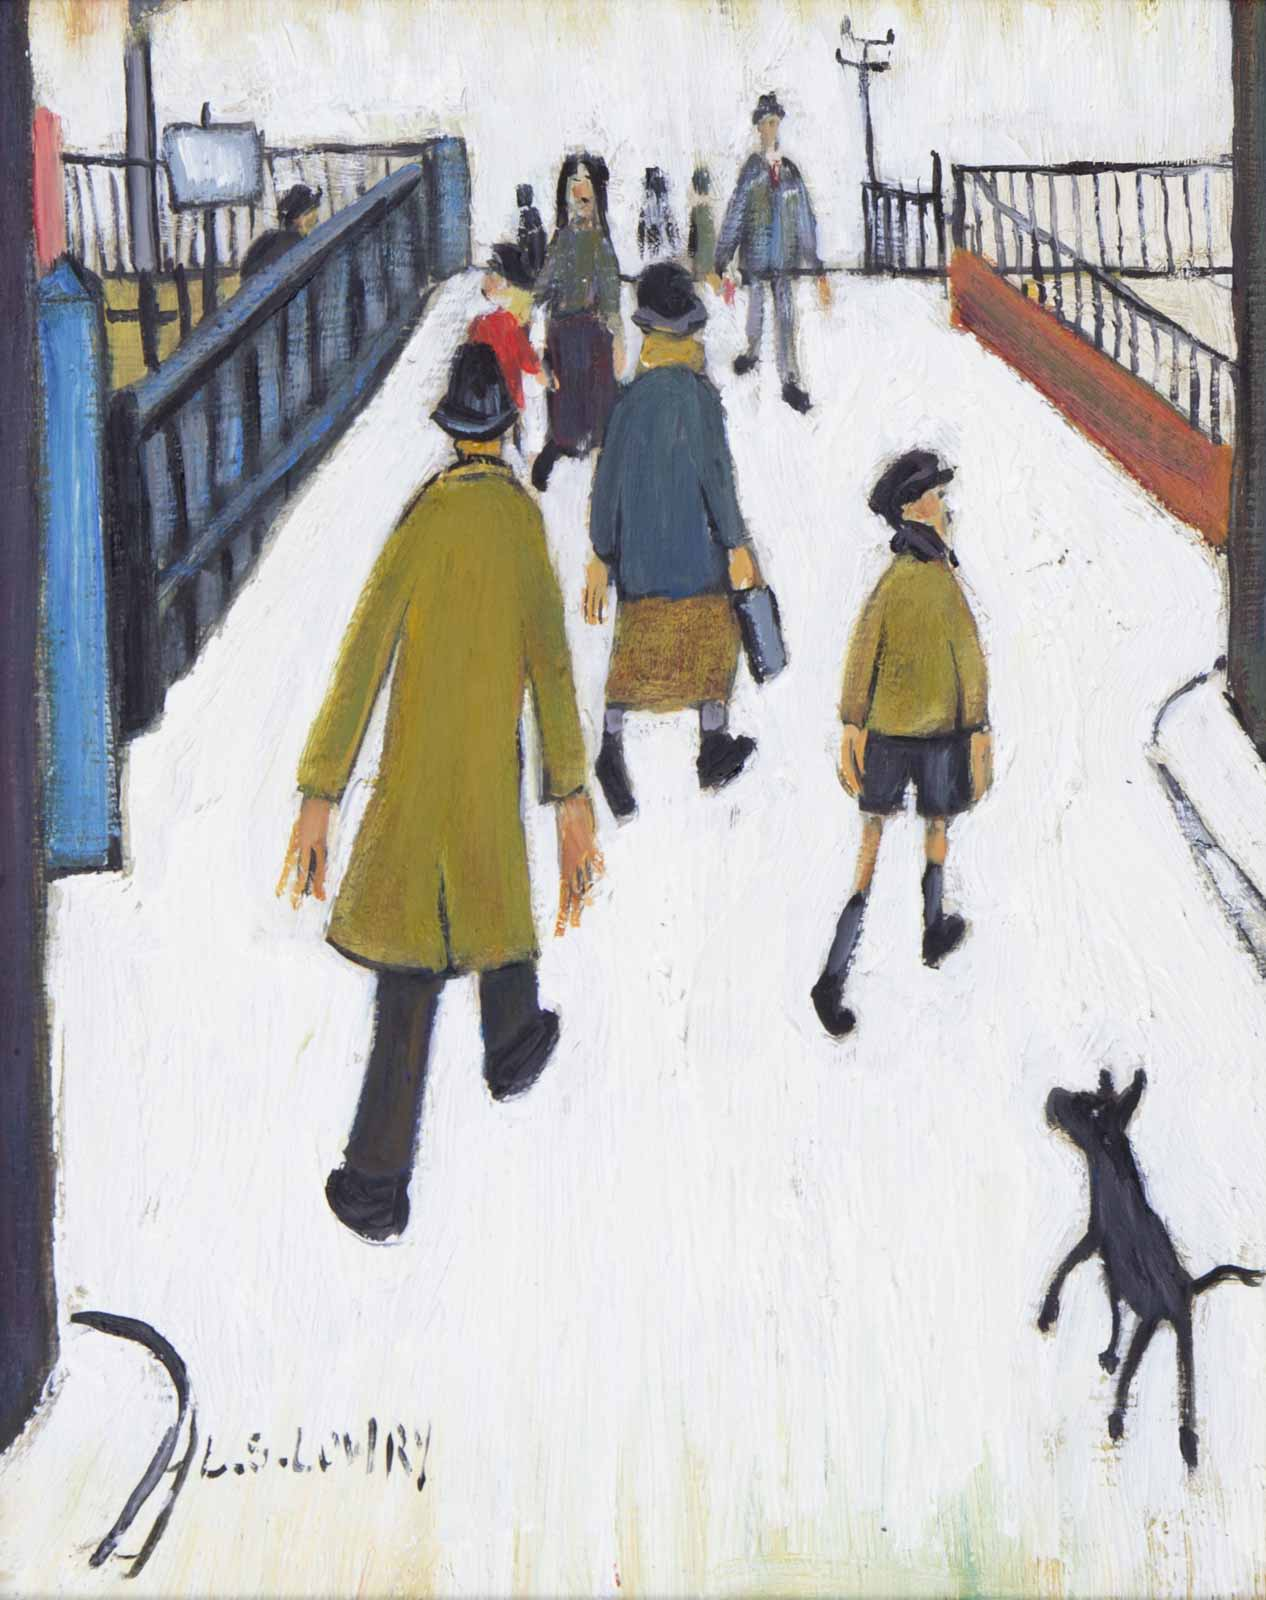 Crossing Over the Footbridge after L.S.Lowry